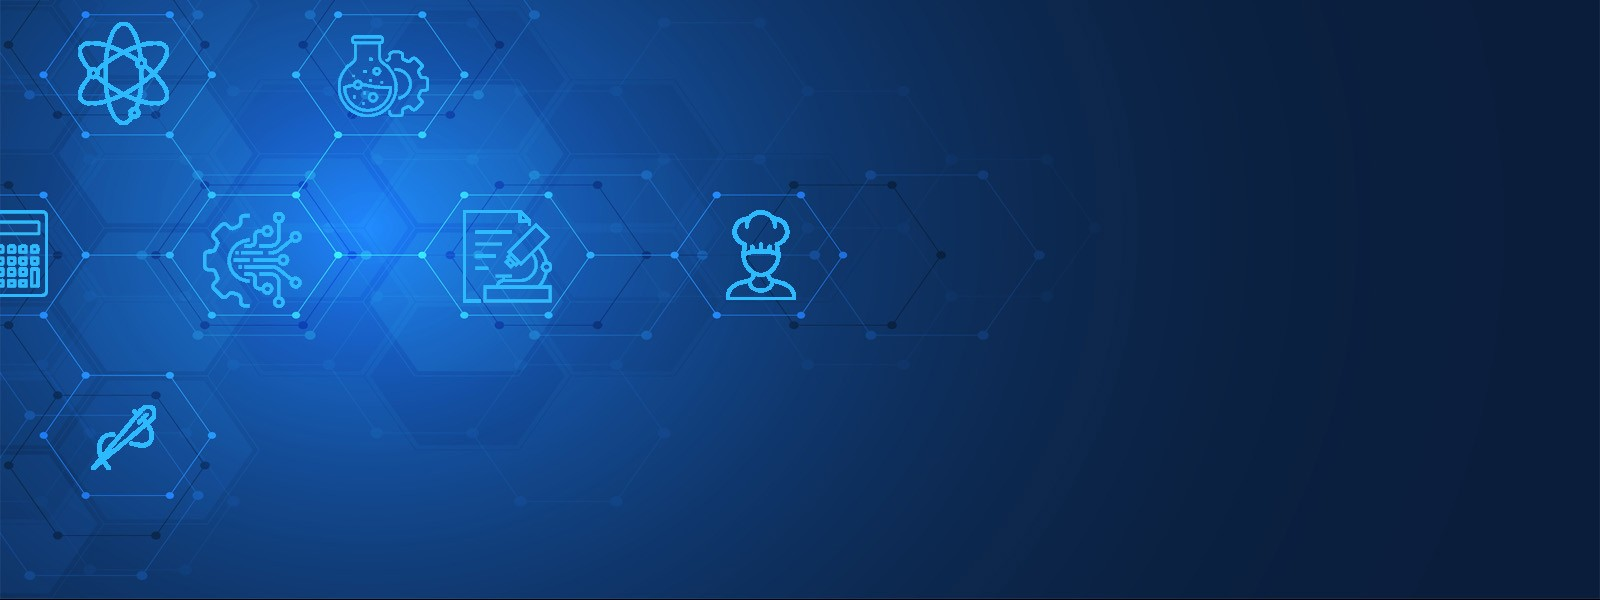 blue background with various science icons to the left